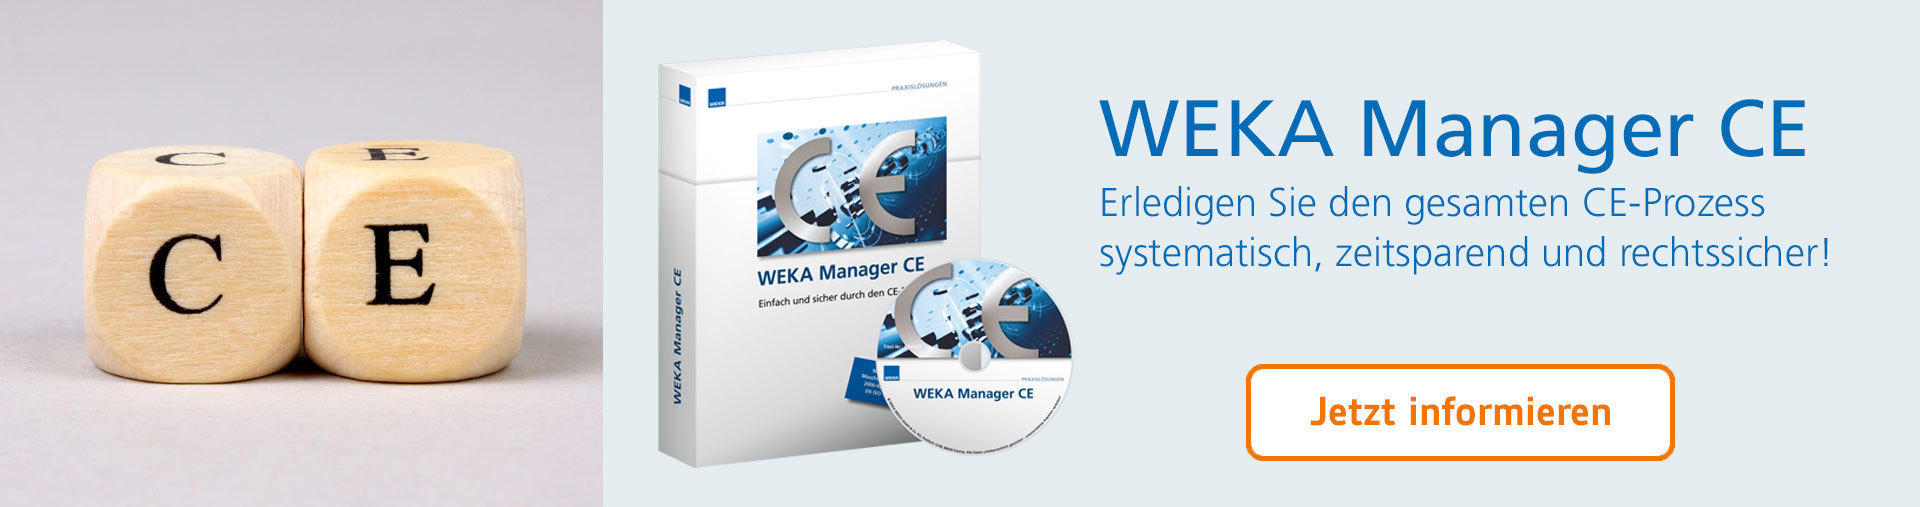 WEKA-Manager CE